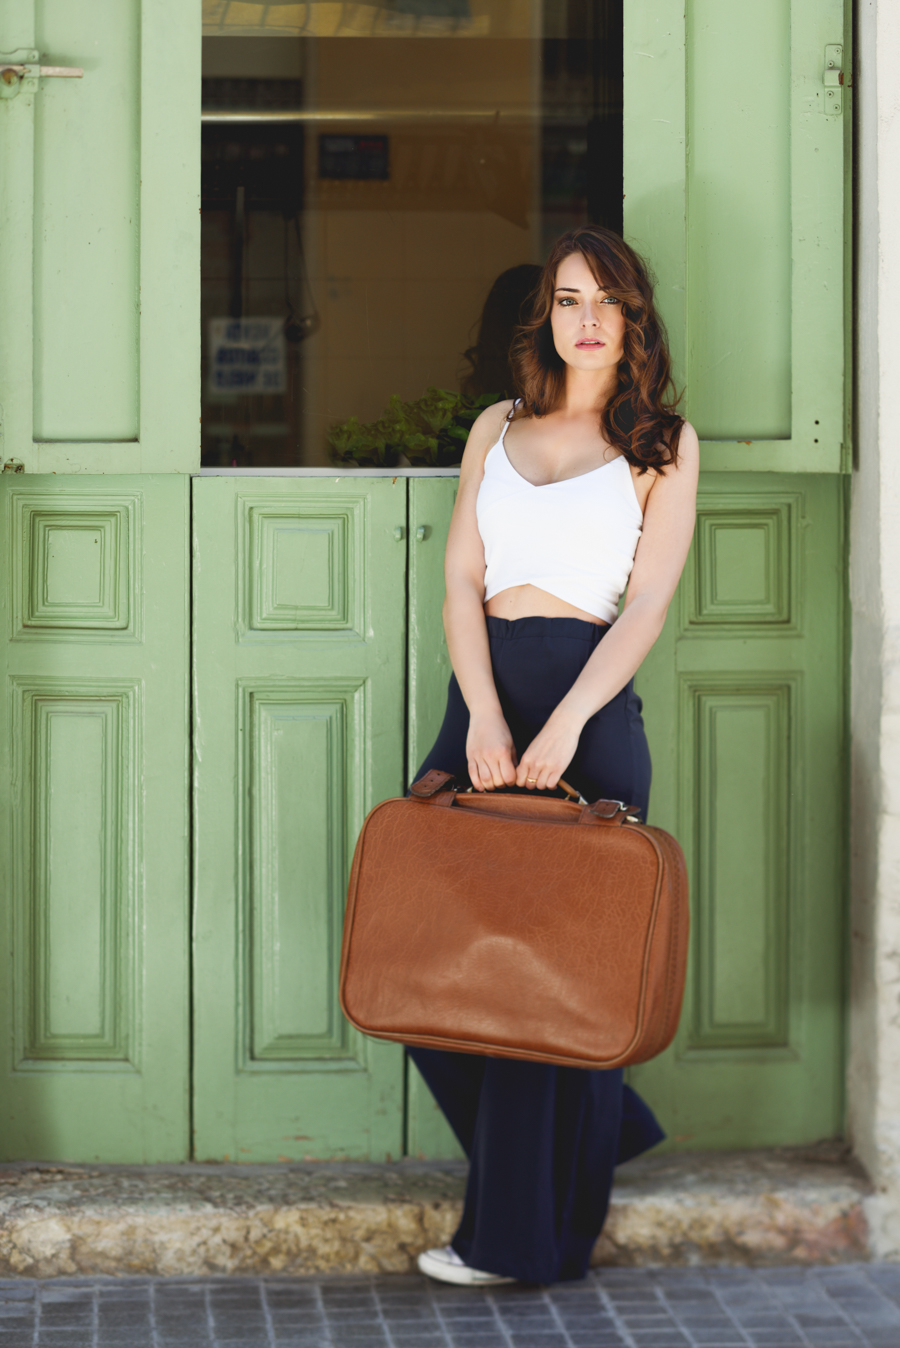 Beautiful girl with vintage bag against green door in urban background. Casual spring clothes